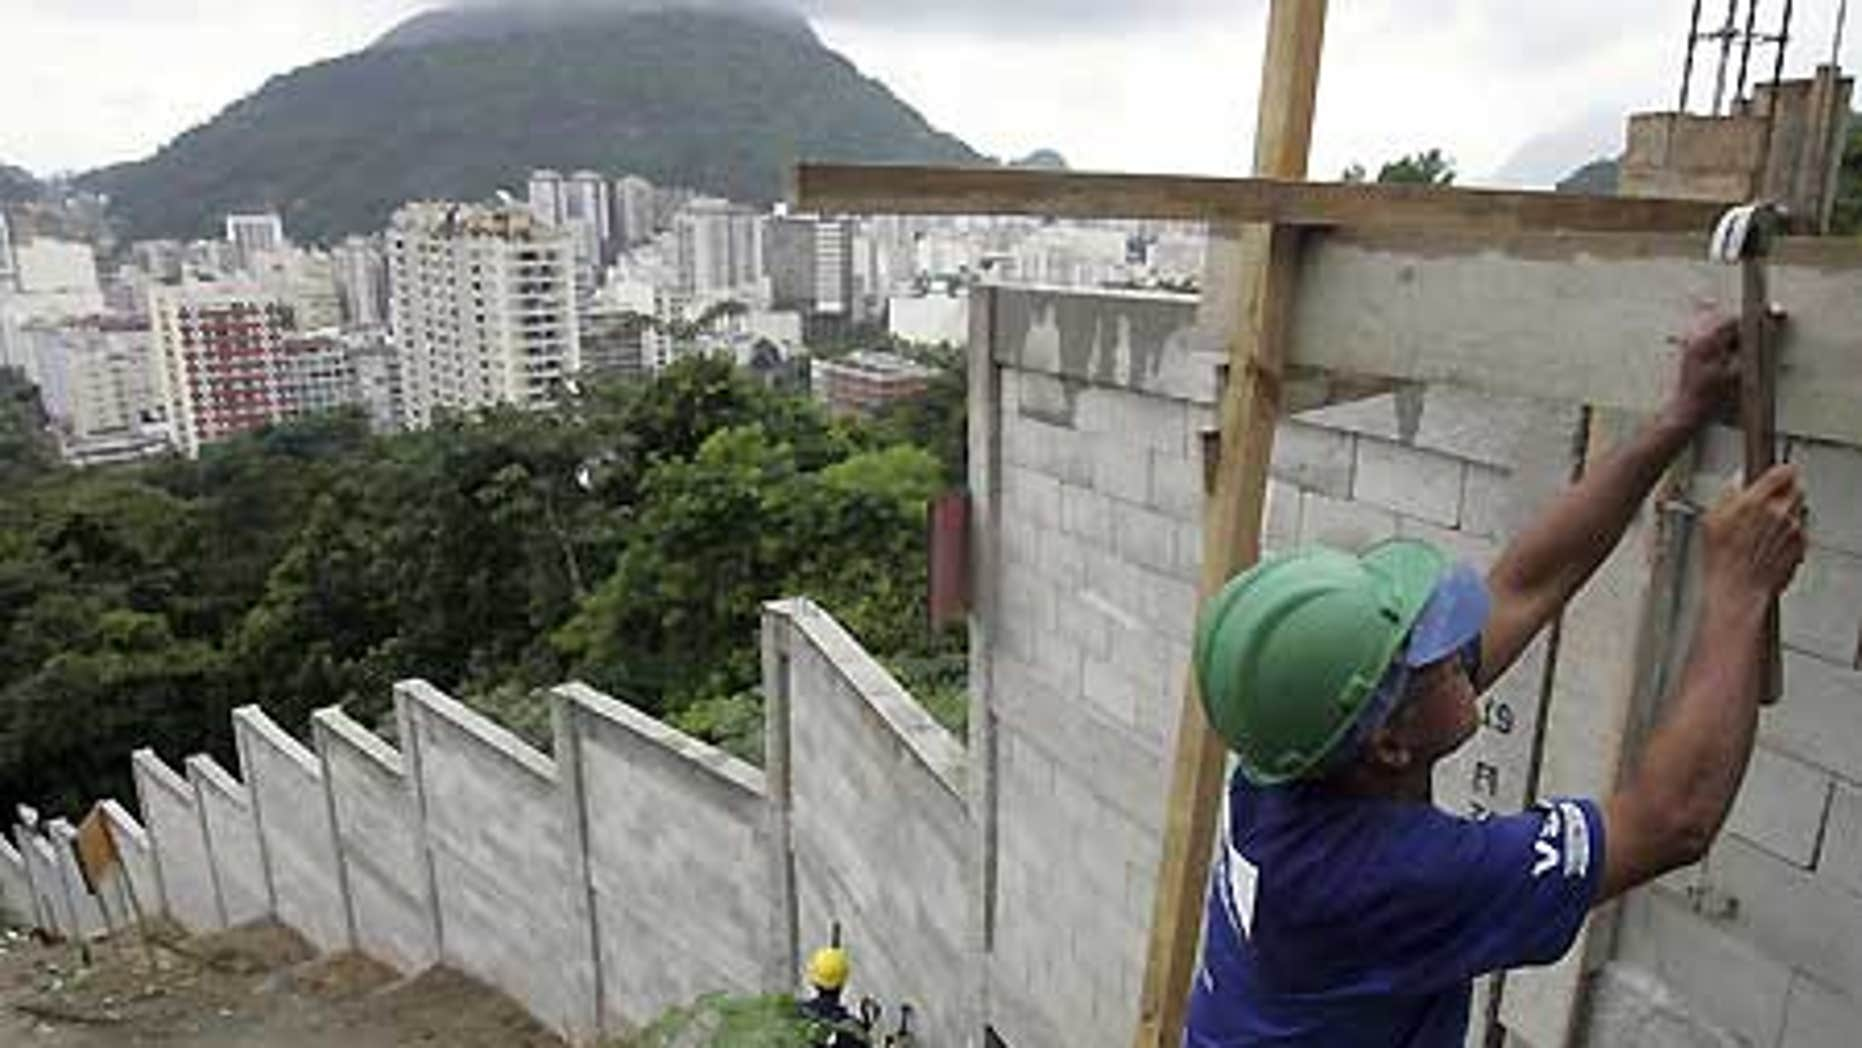 March 31: A worker builds a wall at the Dona Marta slum in Rio de Janeiro.